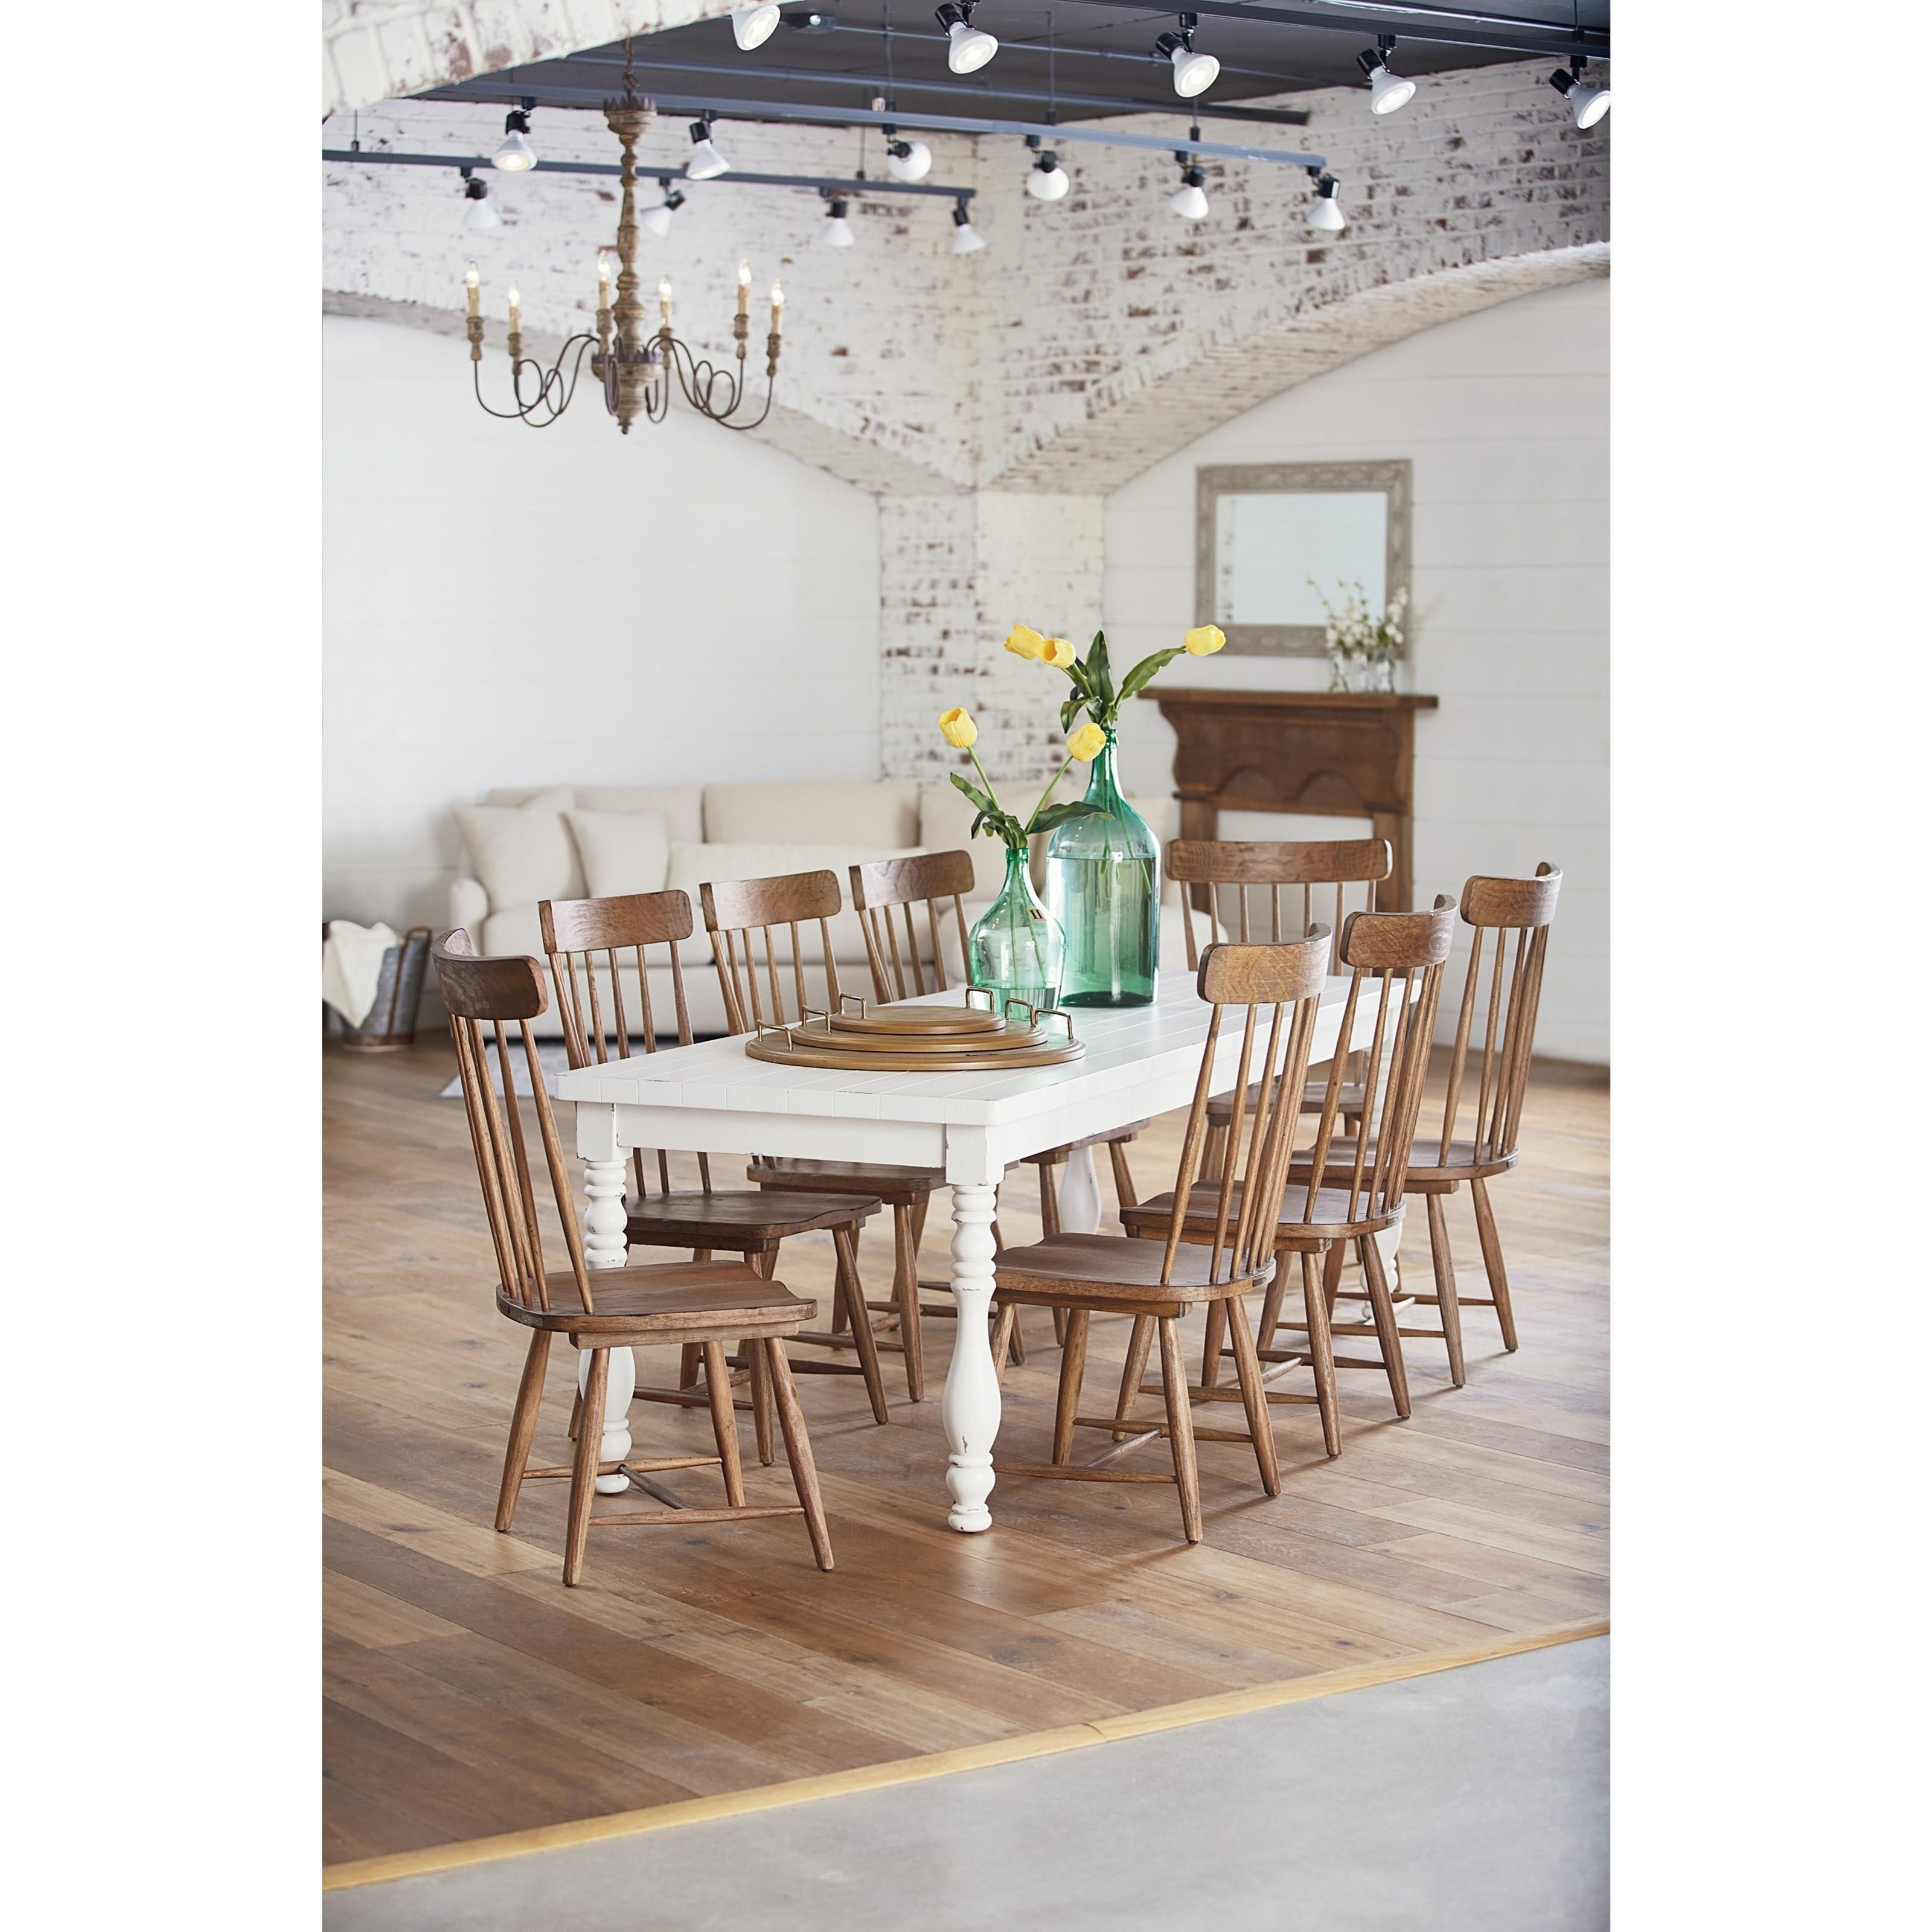 Spindle Back Side Chair By Magnolia Home By Joanna Gaines Wolf And Gardiner Wolf Furniture